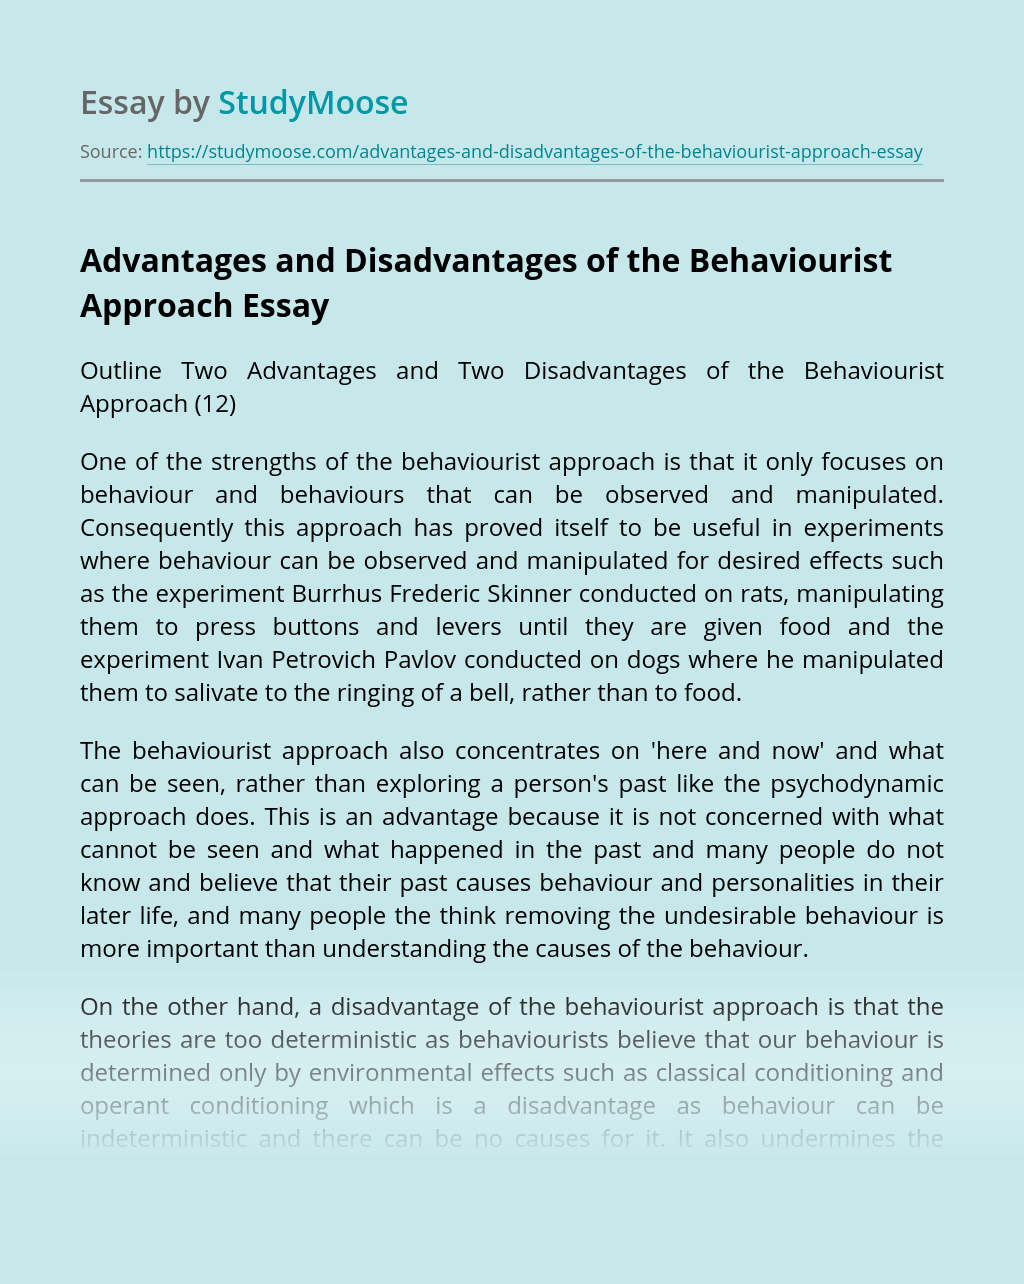 Advantages and Disadvantages of the Behaviourist Approach